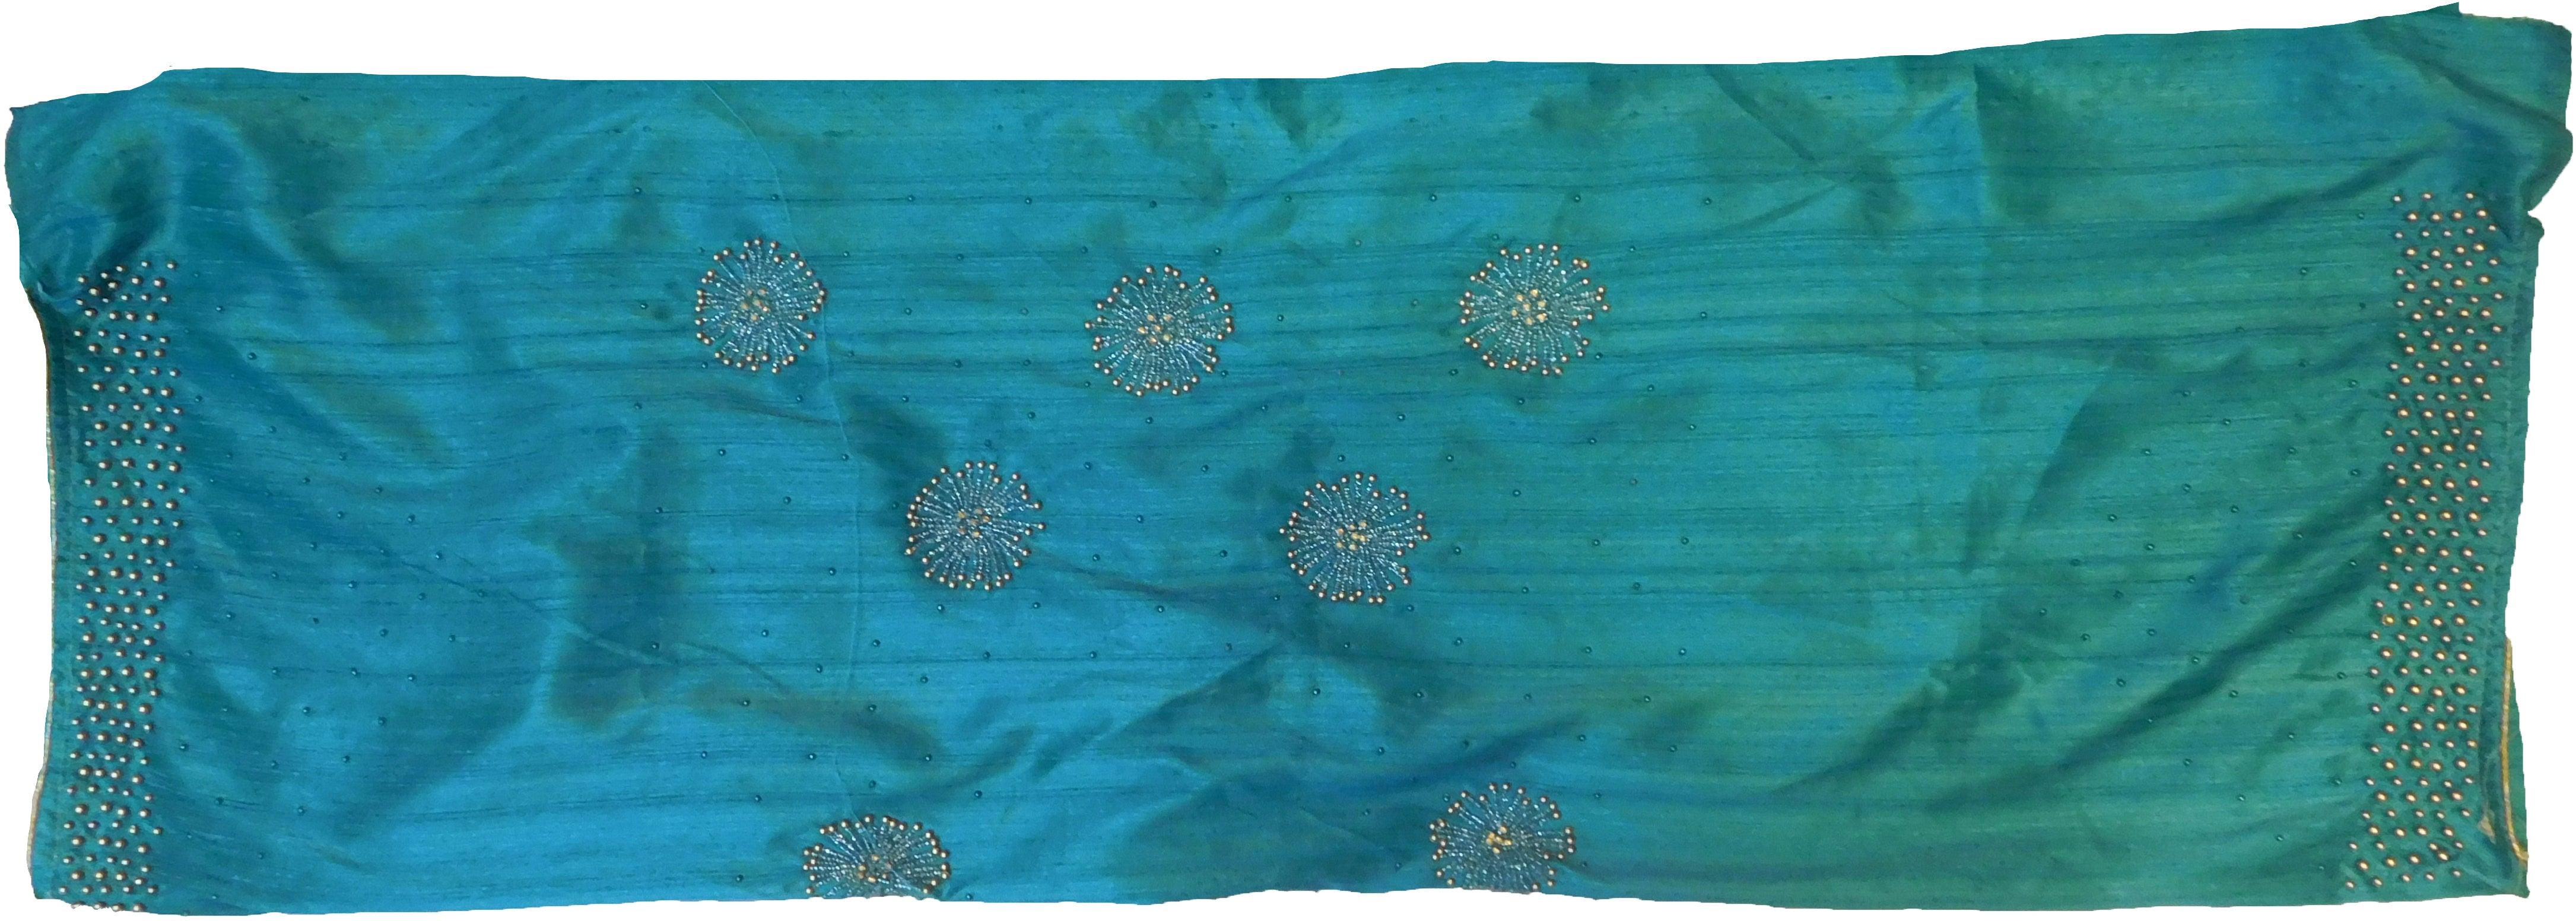 SMSAREE Blue Designer Wedding Partywear Silk (Vichitra) Stone & Beads Hand Embroidery Work Bridal Saree Sari With Blouse Piece F271